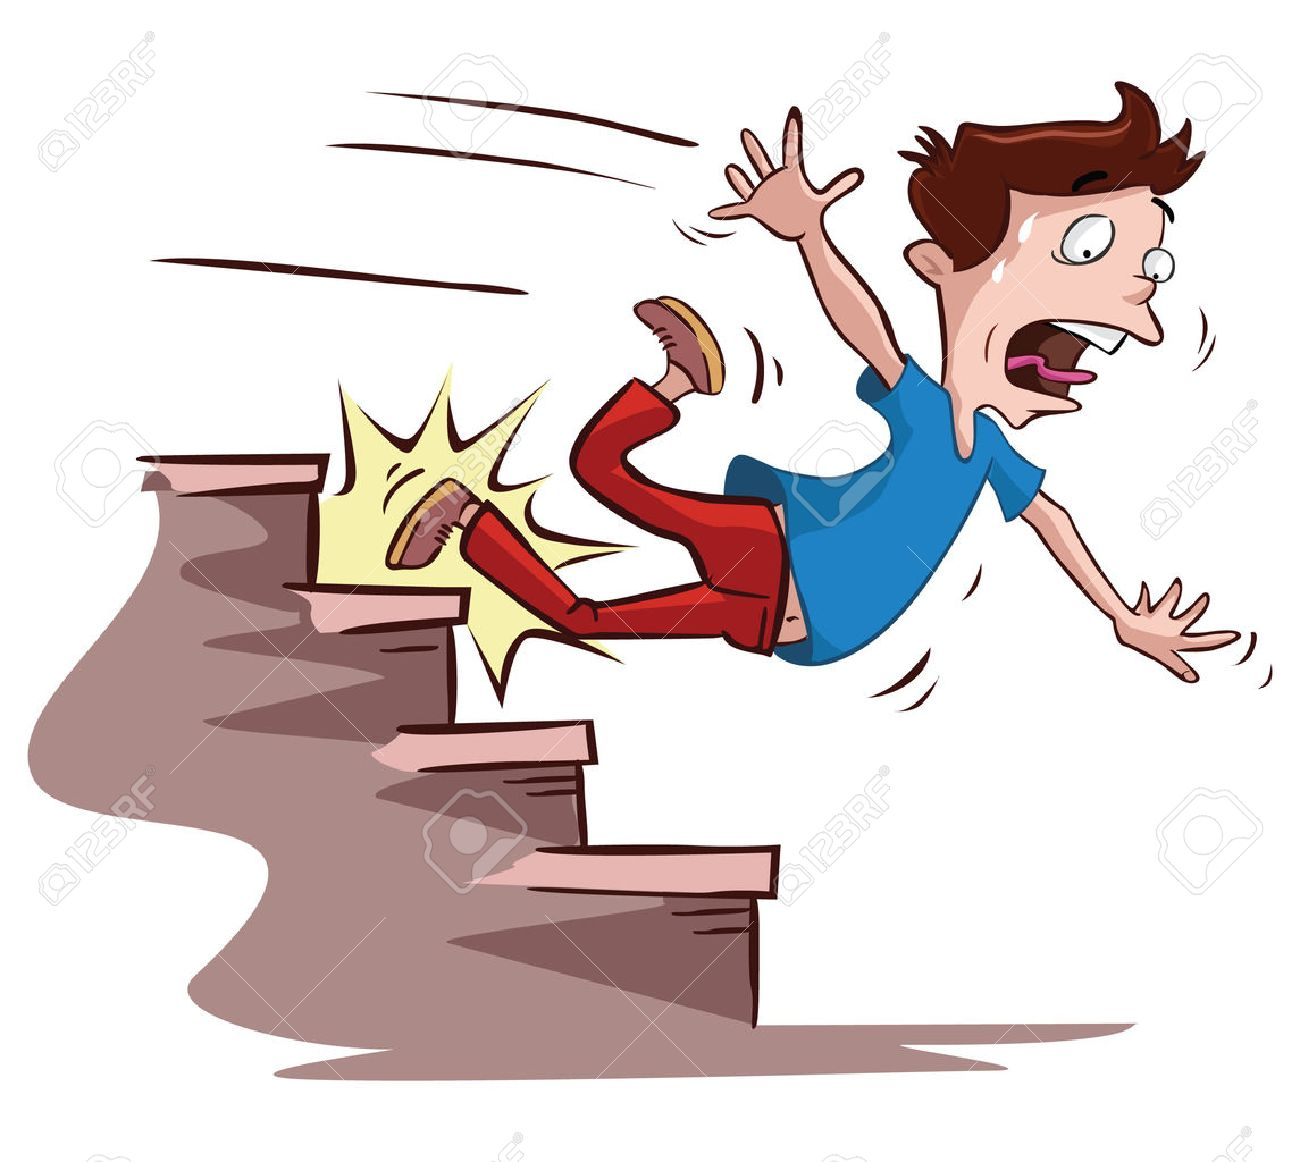 men slipped on the stairs - 39279423